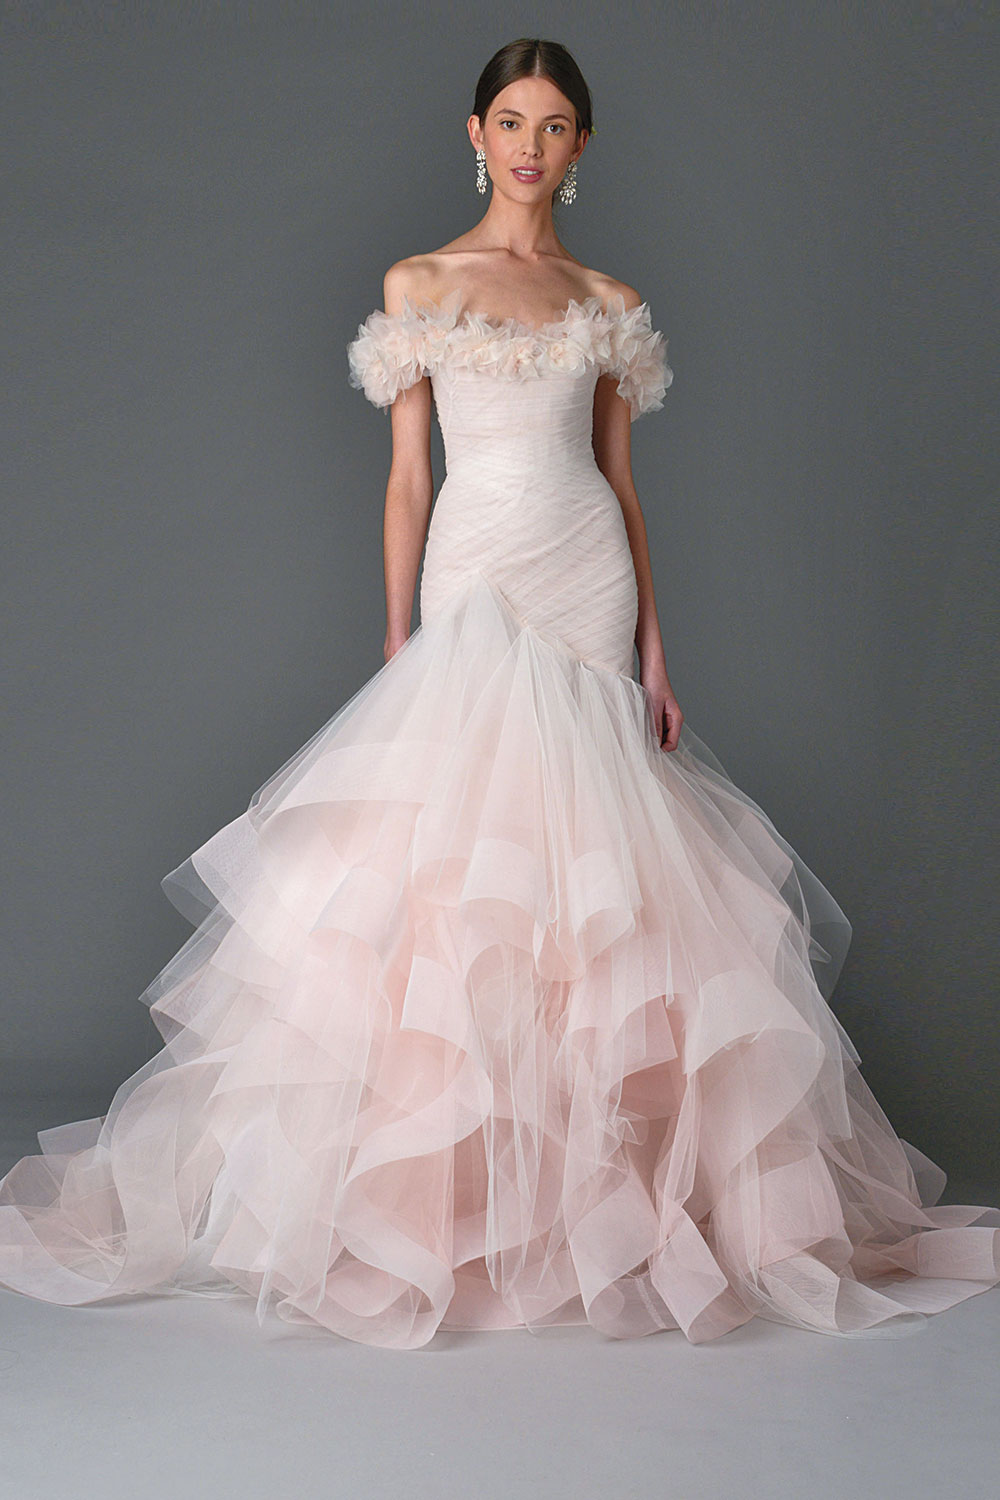 pale pink wedding dress by Marchesa